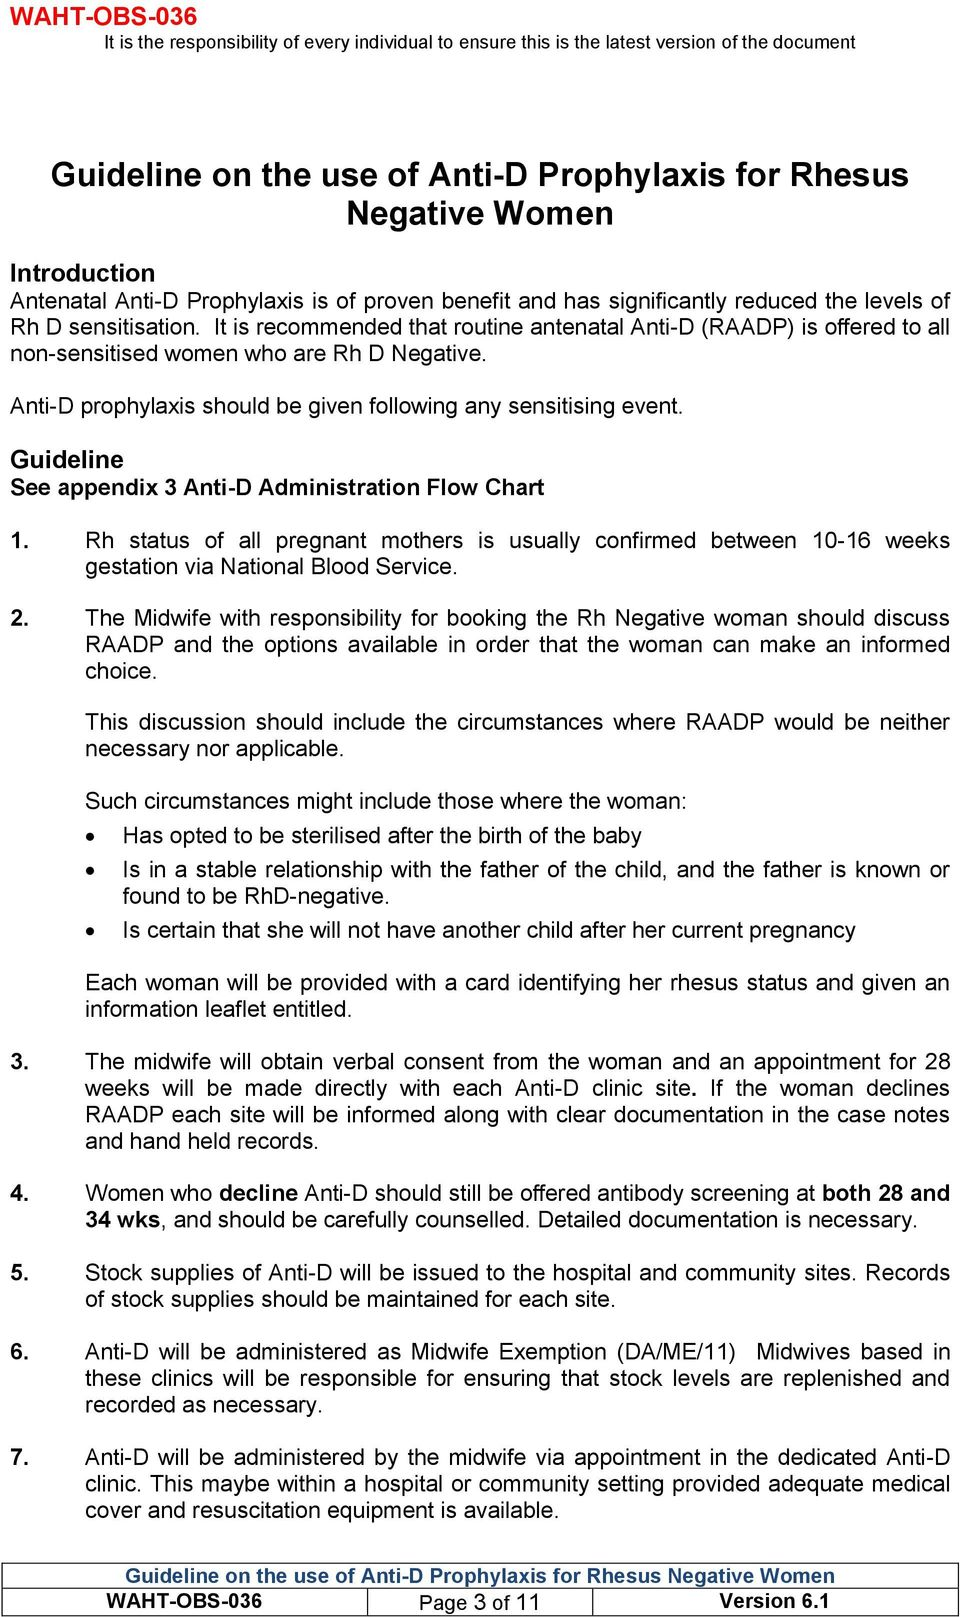 Guideline See appendix 3 Anti-D Administration Flow Chart 1. Rh status of all pregnant mothers is usually confirmed between 10-16 weeks gestation via National Blood Service. 2.